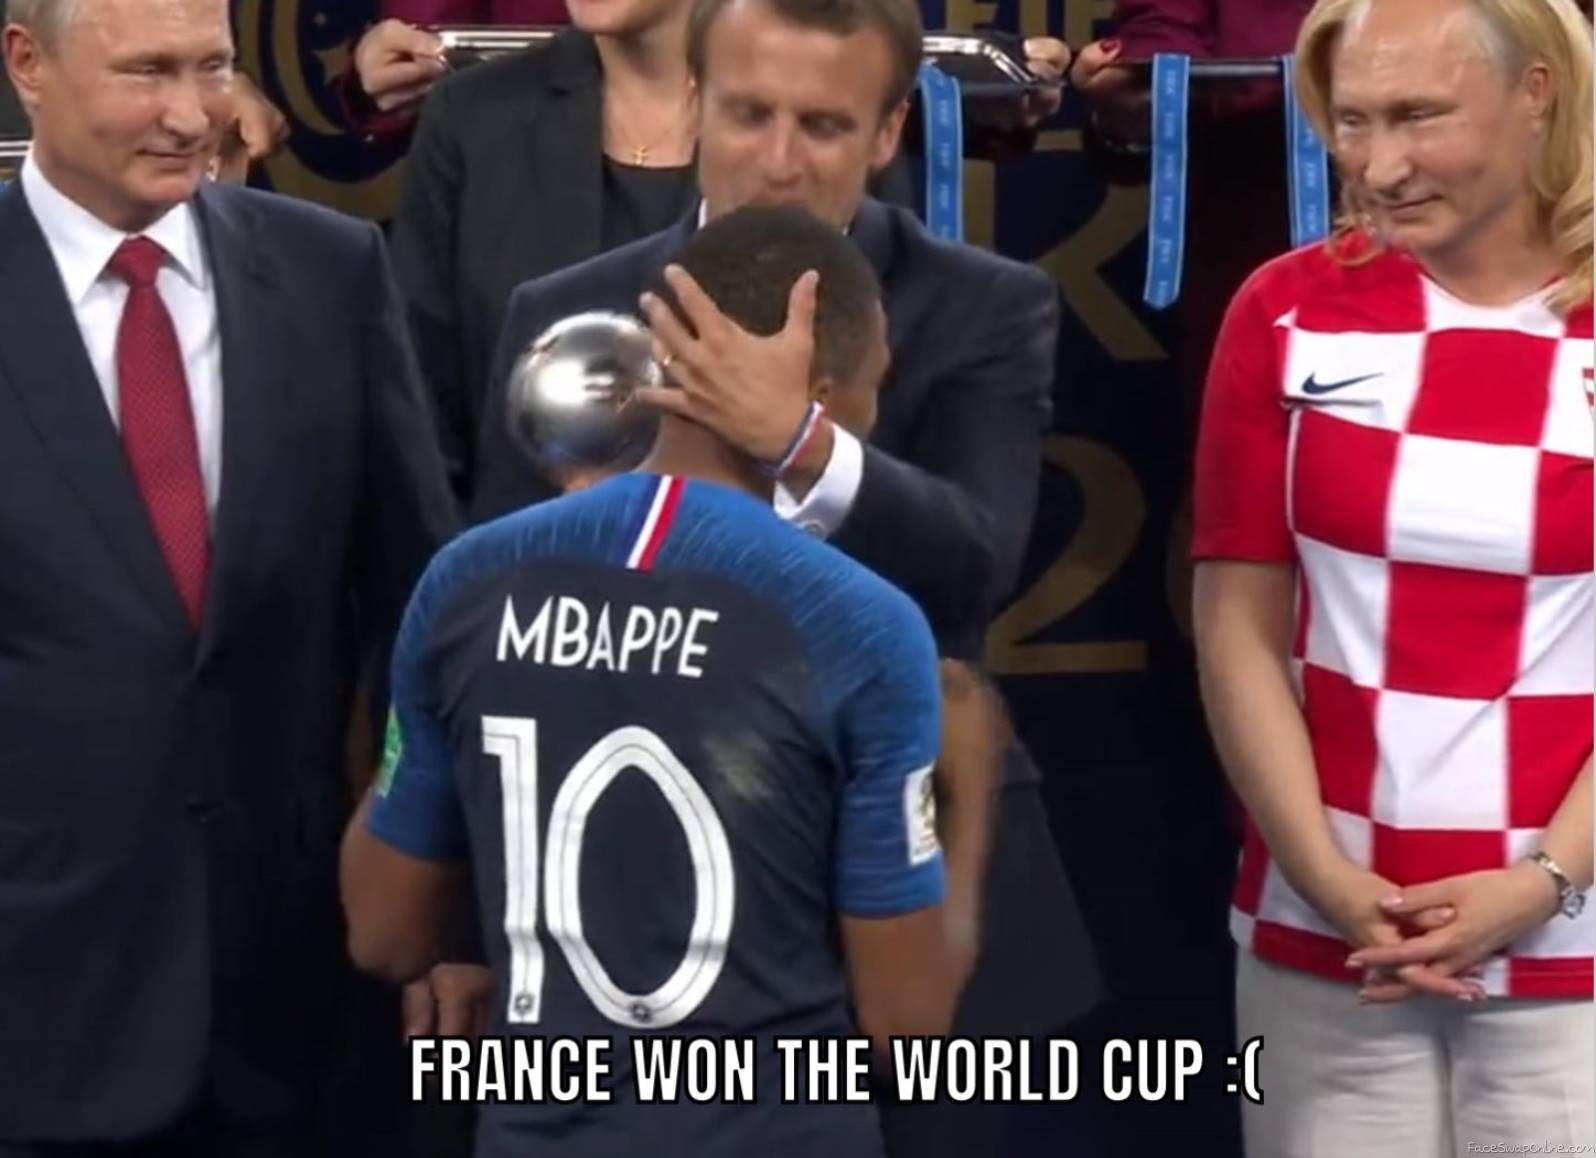 France won the world cup